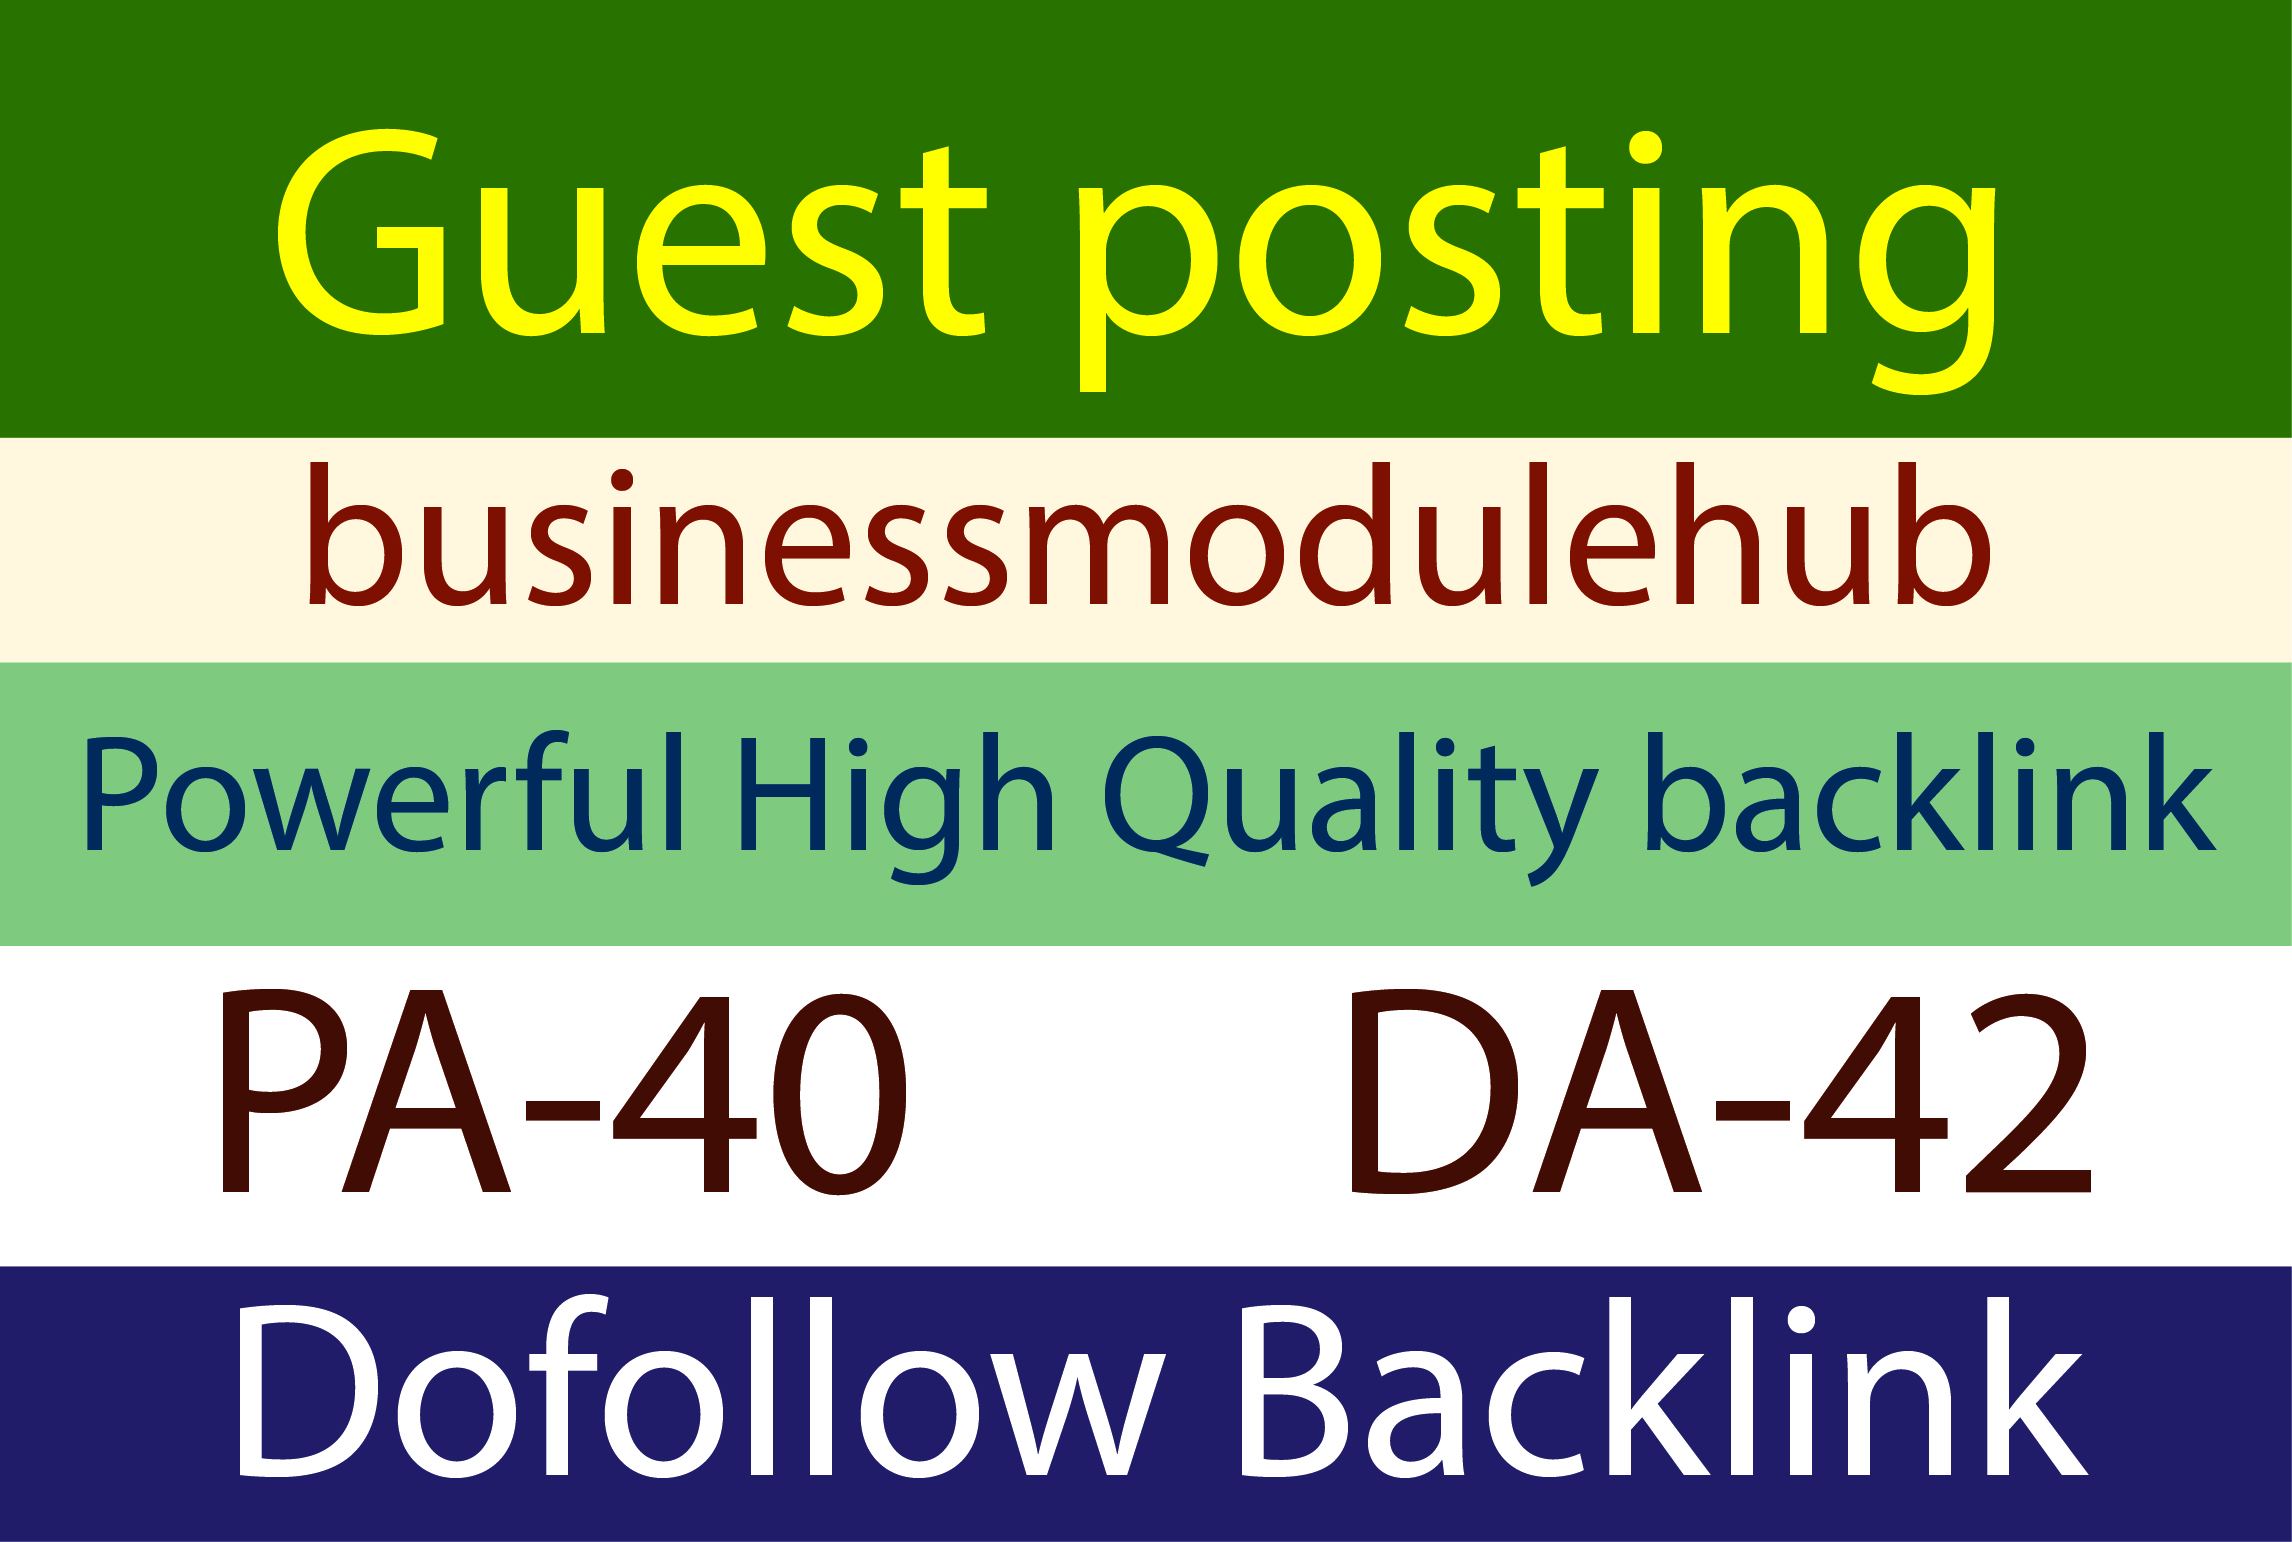 I will do write and publish guest post on businessmodulehub. com with do-follow links